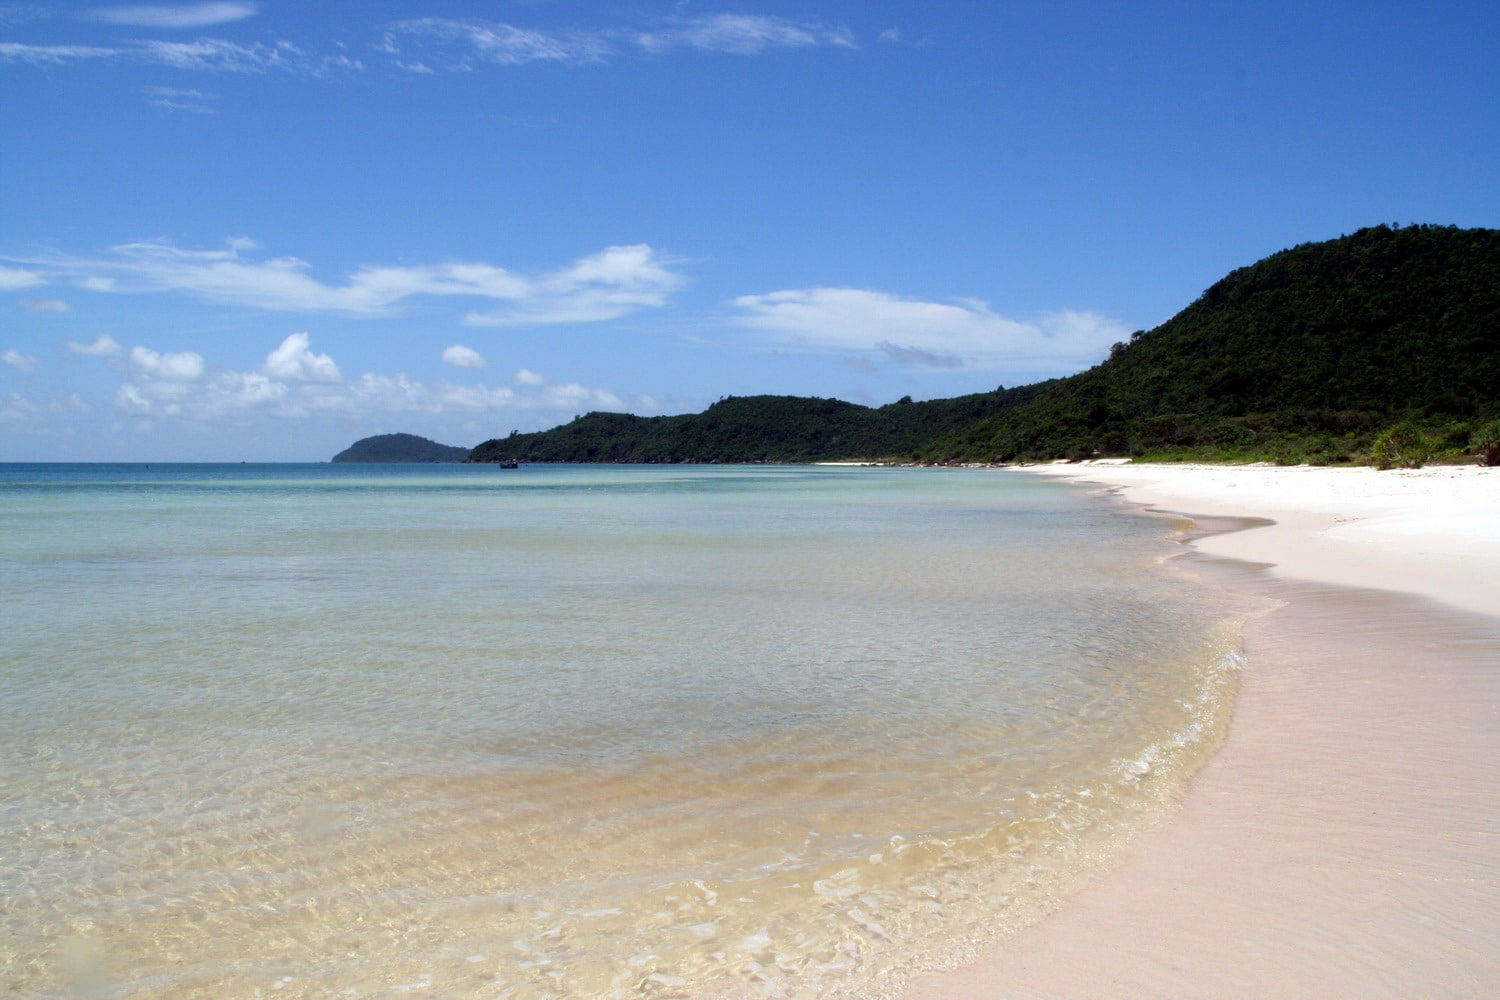 Image of a beach in Phu Quoc National Park in Vietnam